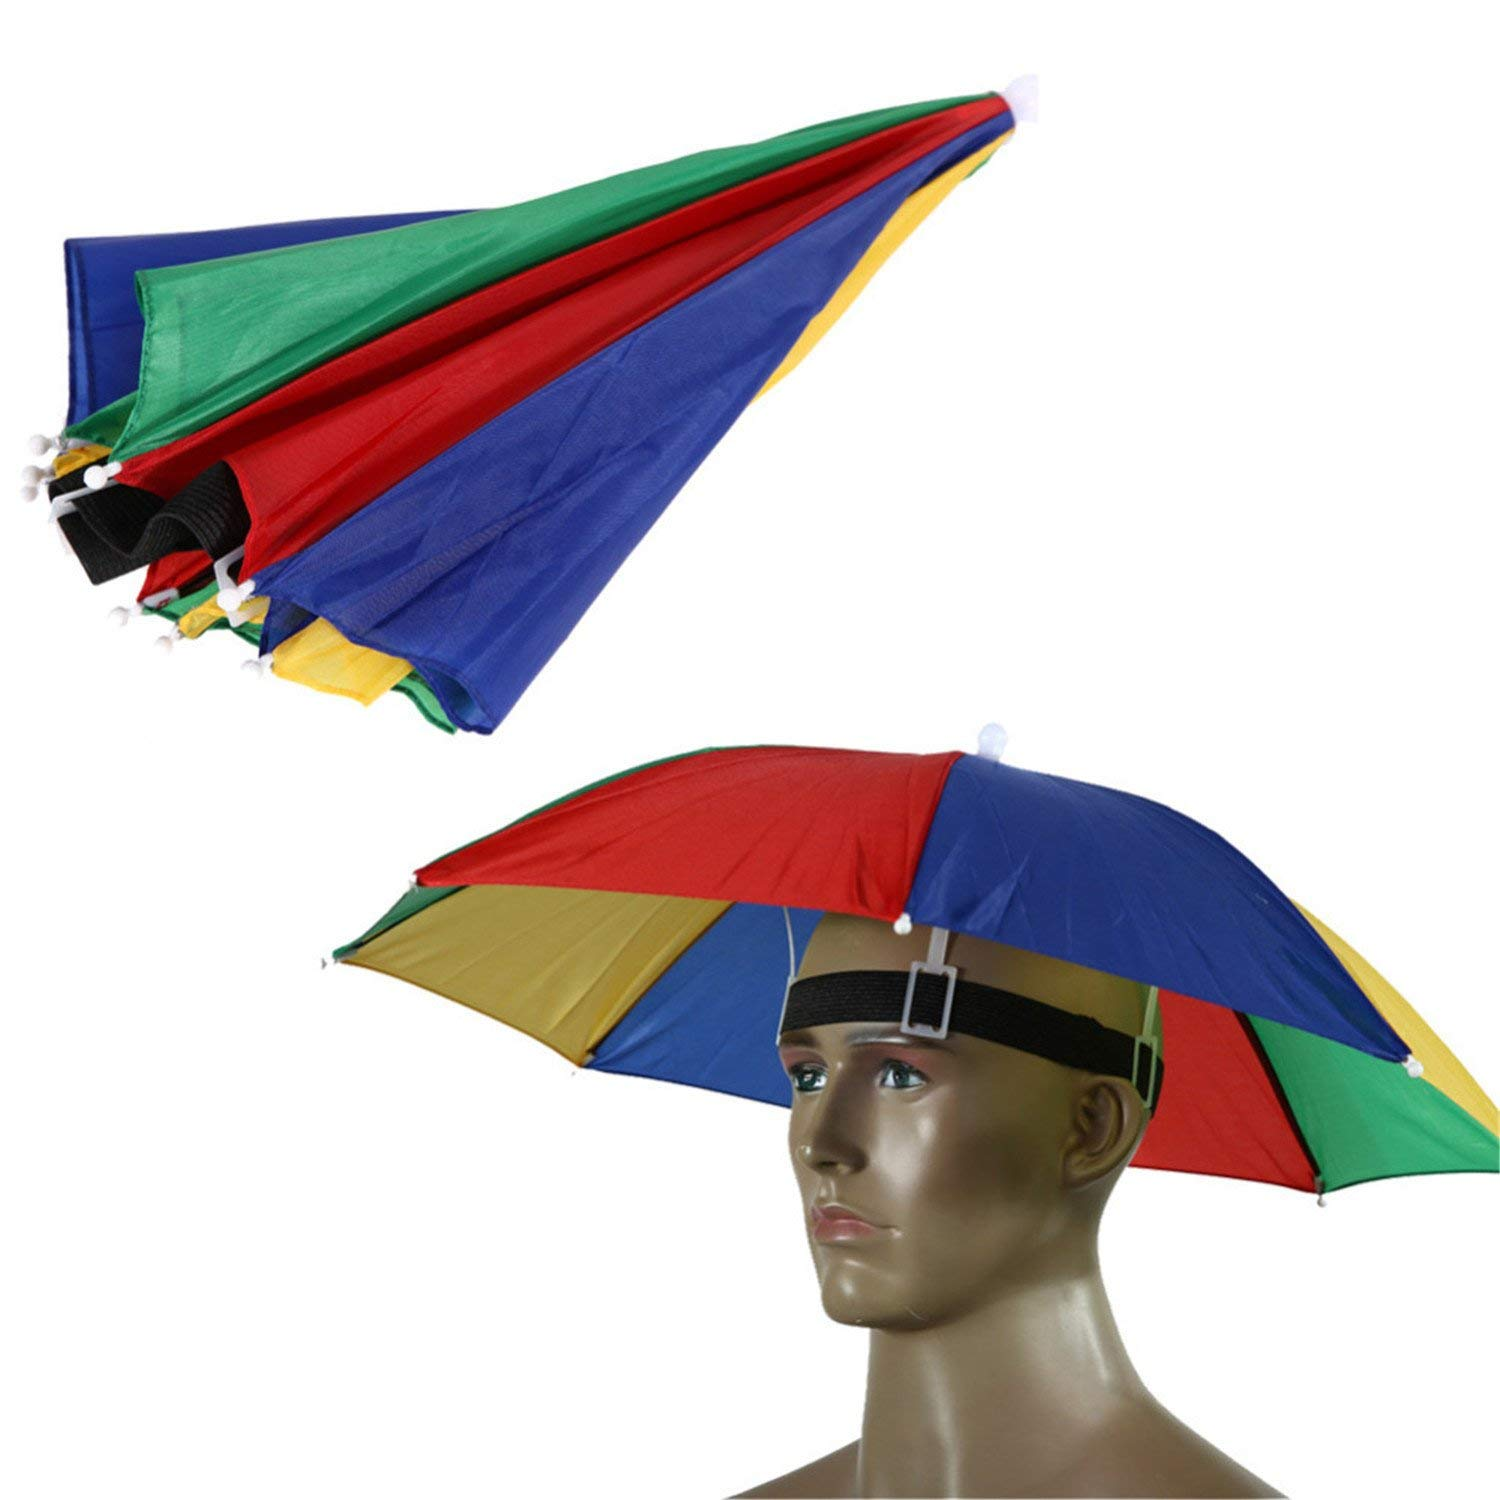 406efa2d79c Get Quotations · 55 Cm Hands Free Usefull Umbrella Hat Camping Fishing  Hiking Festivals Outdoor Parasol Umbrella Hat Cap